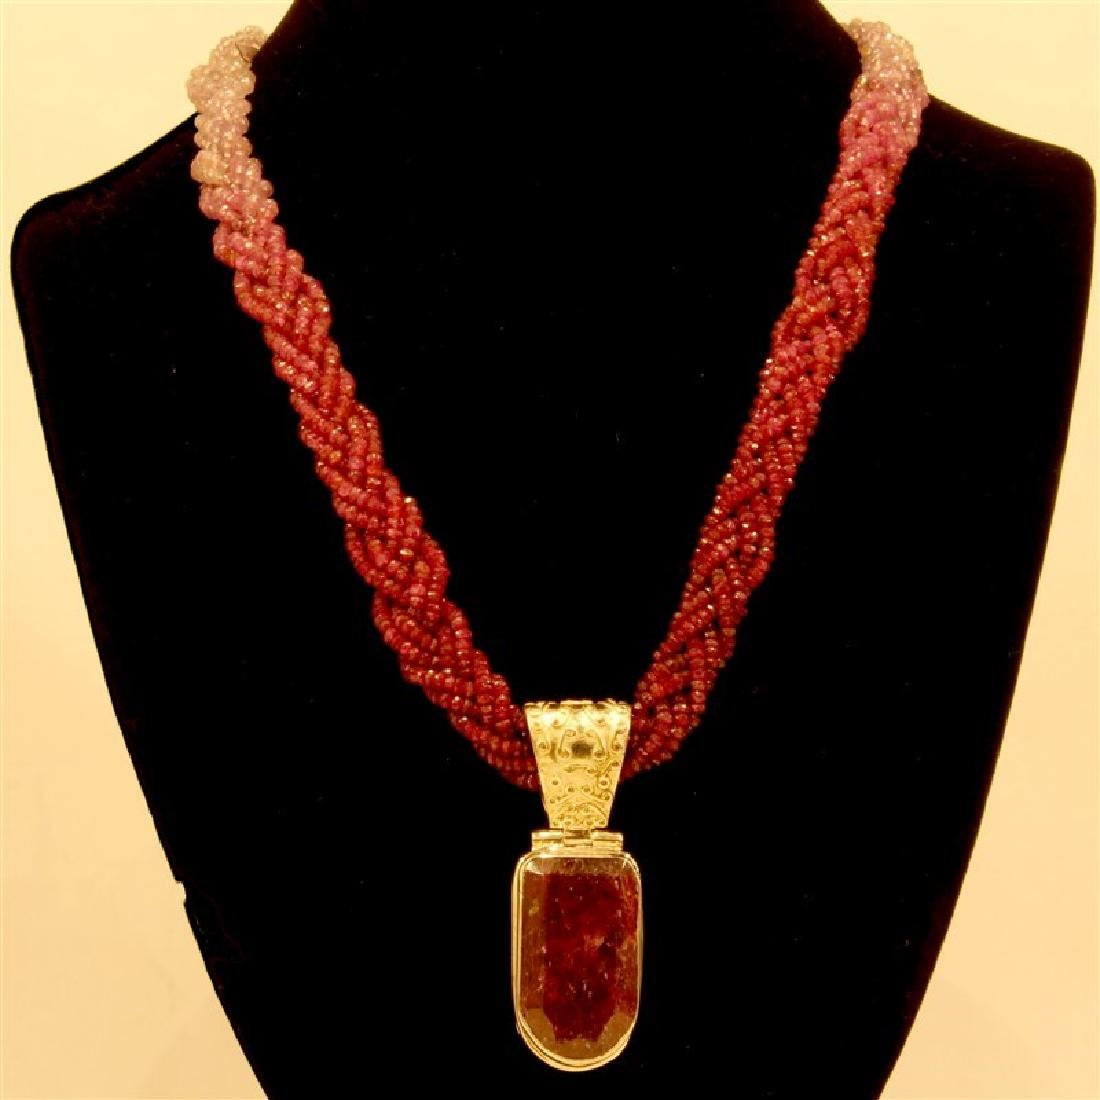 Faceted Ruby And Sapphire Beads Necklace And Pendant